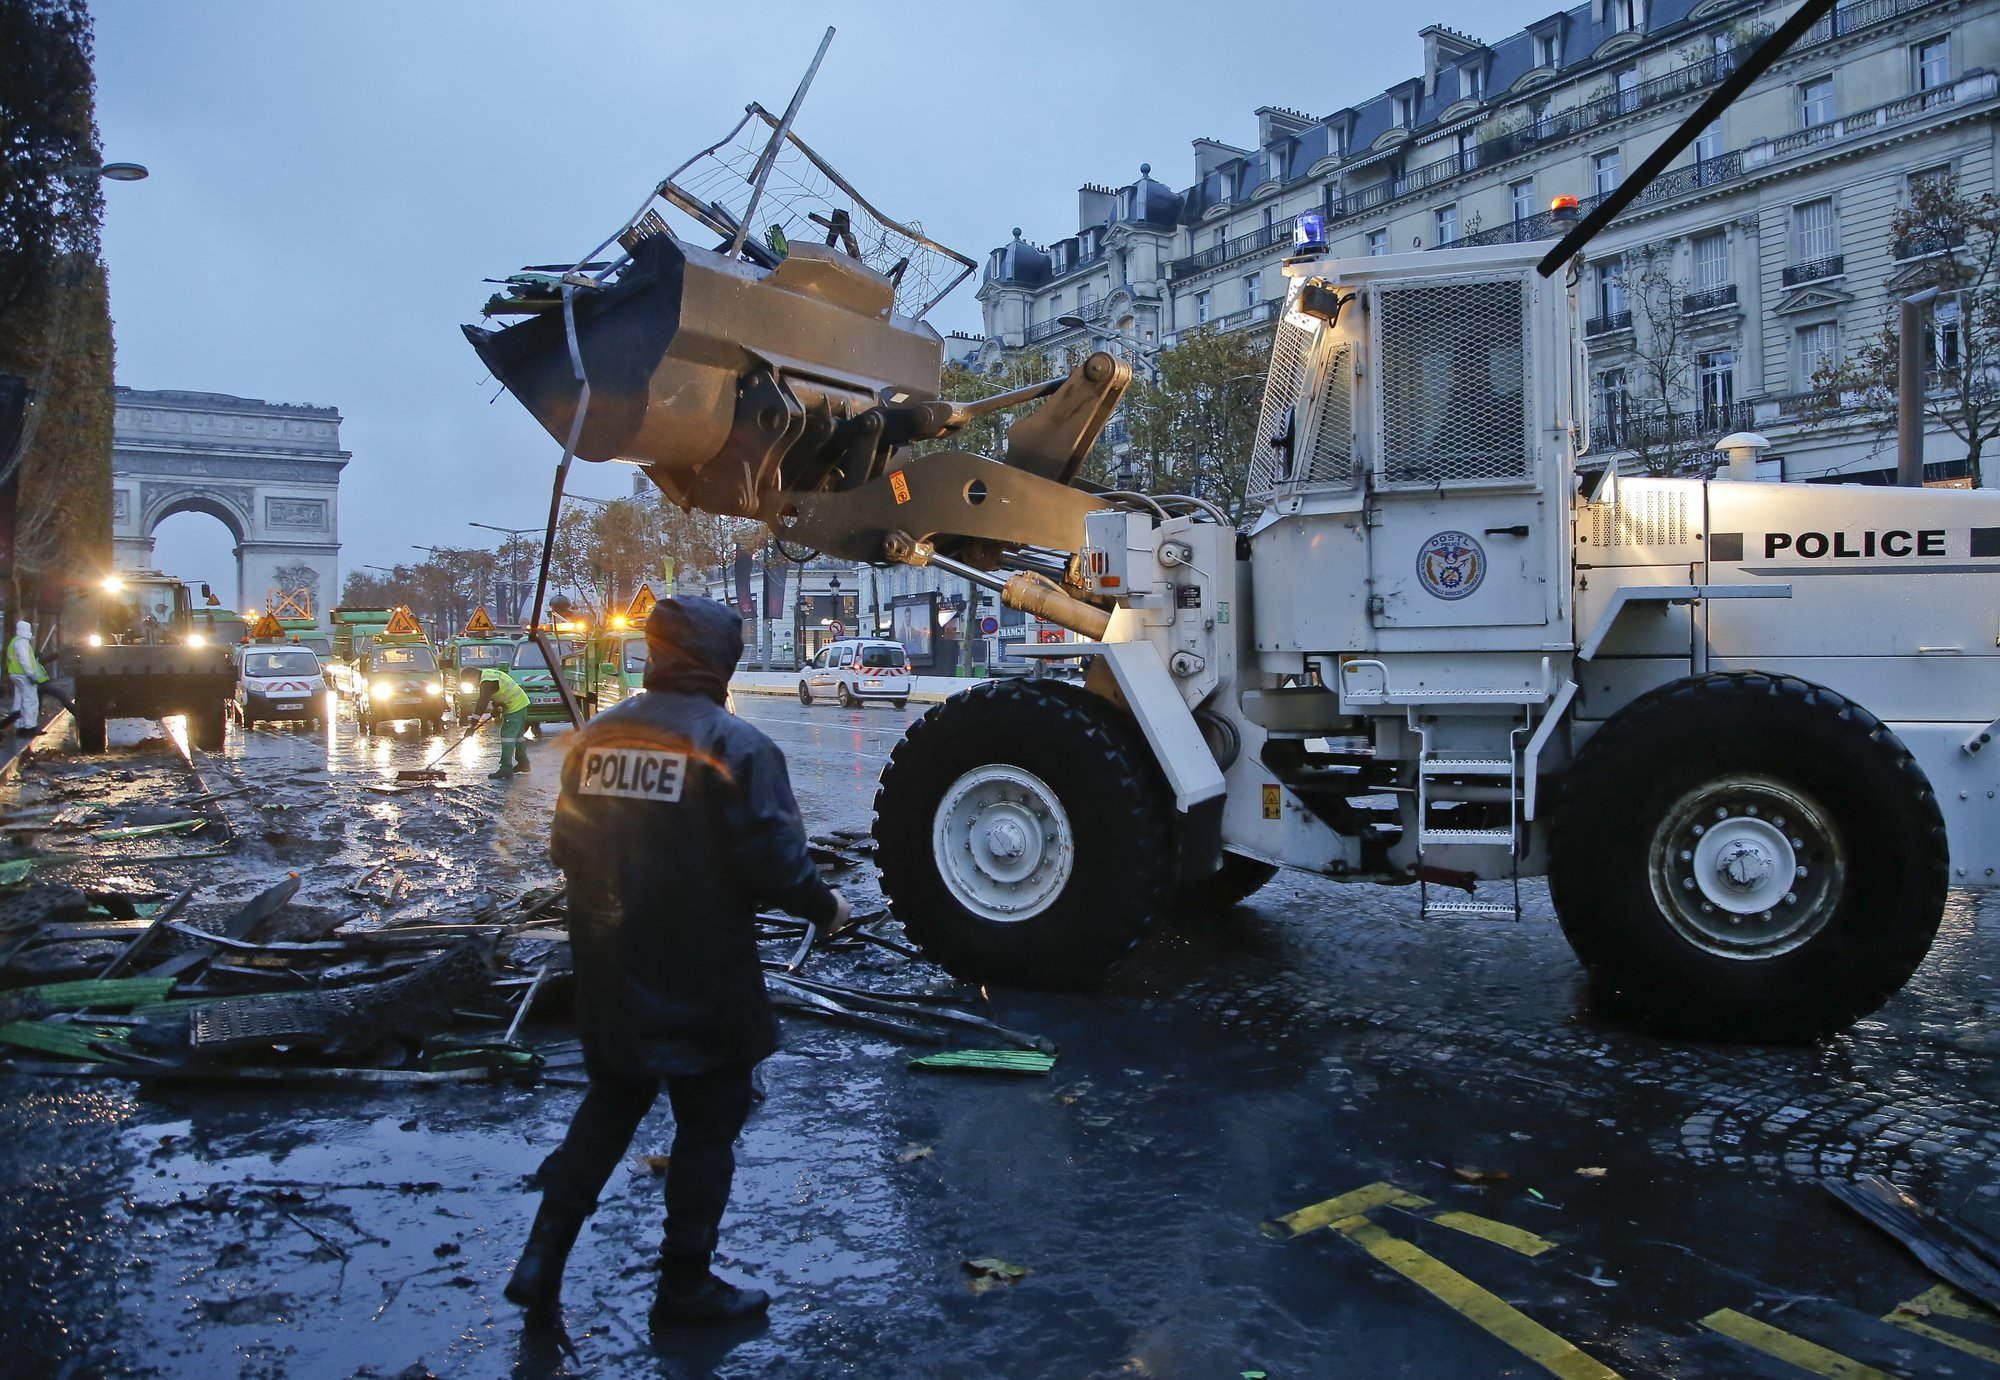 France to assess financial impact of clashes over fuel tax